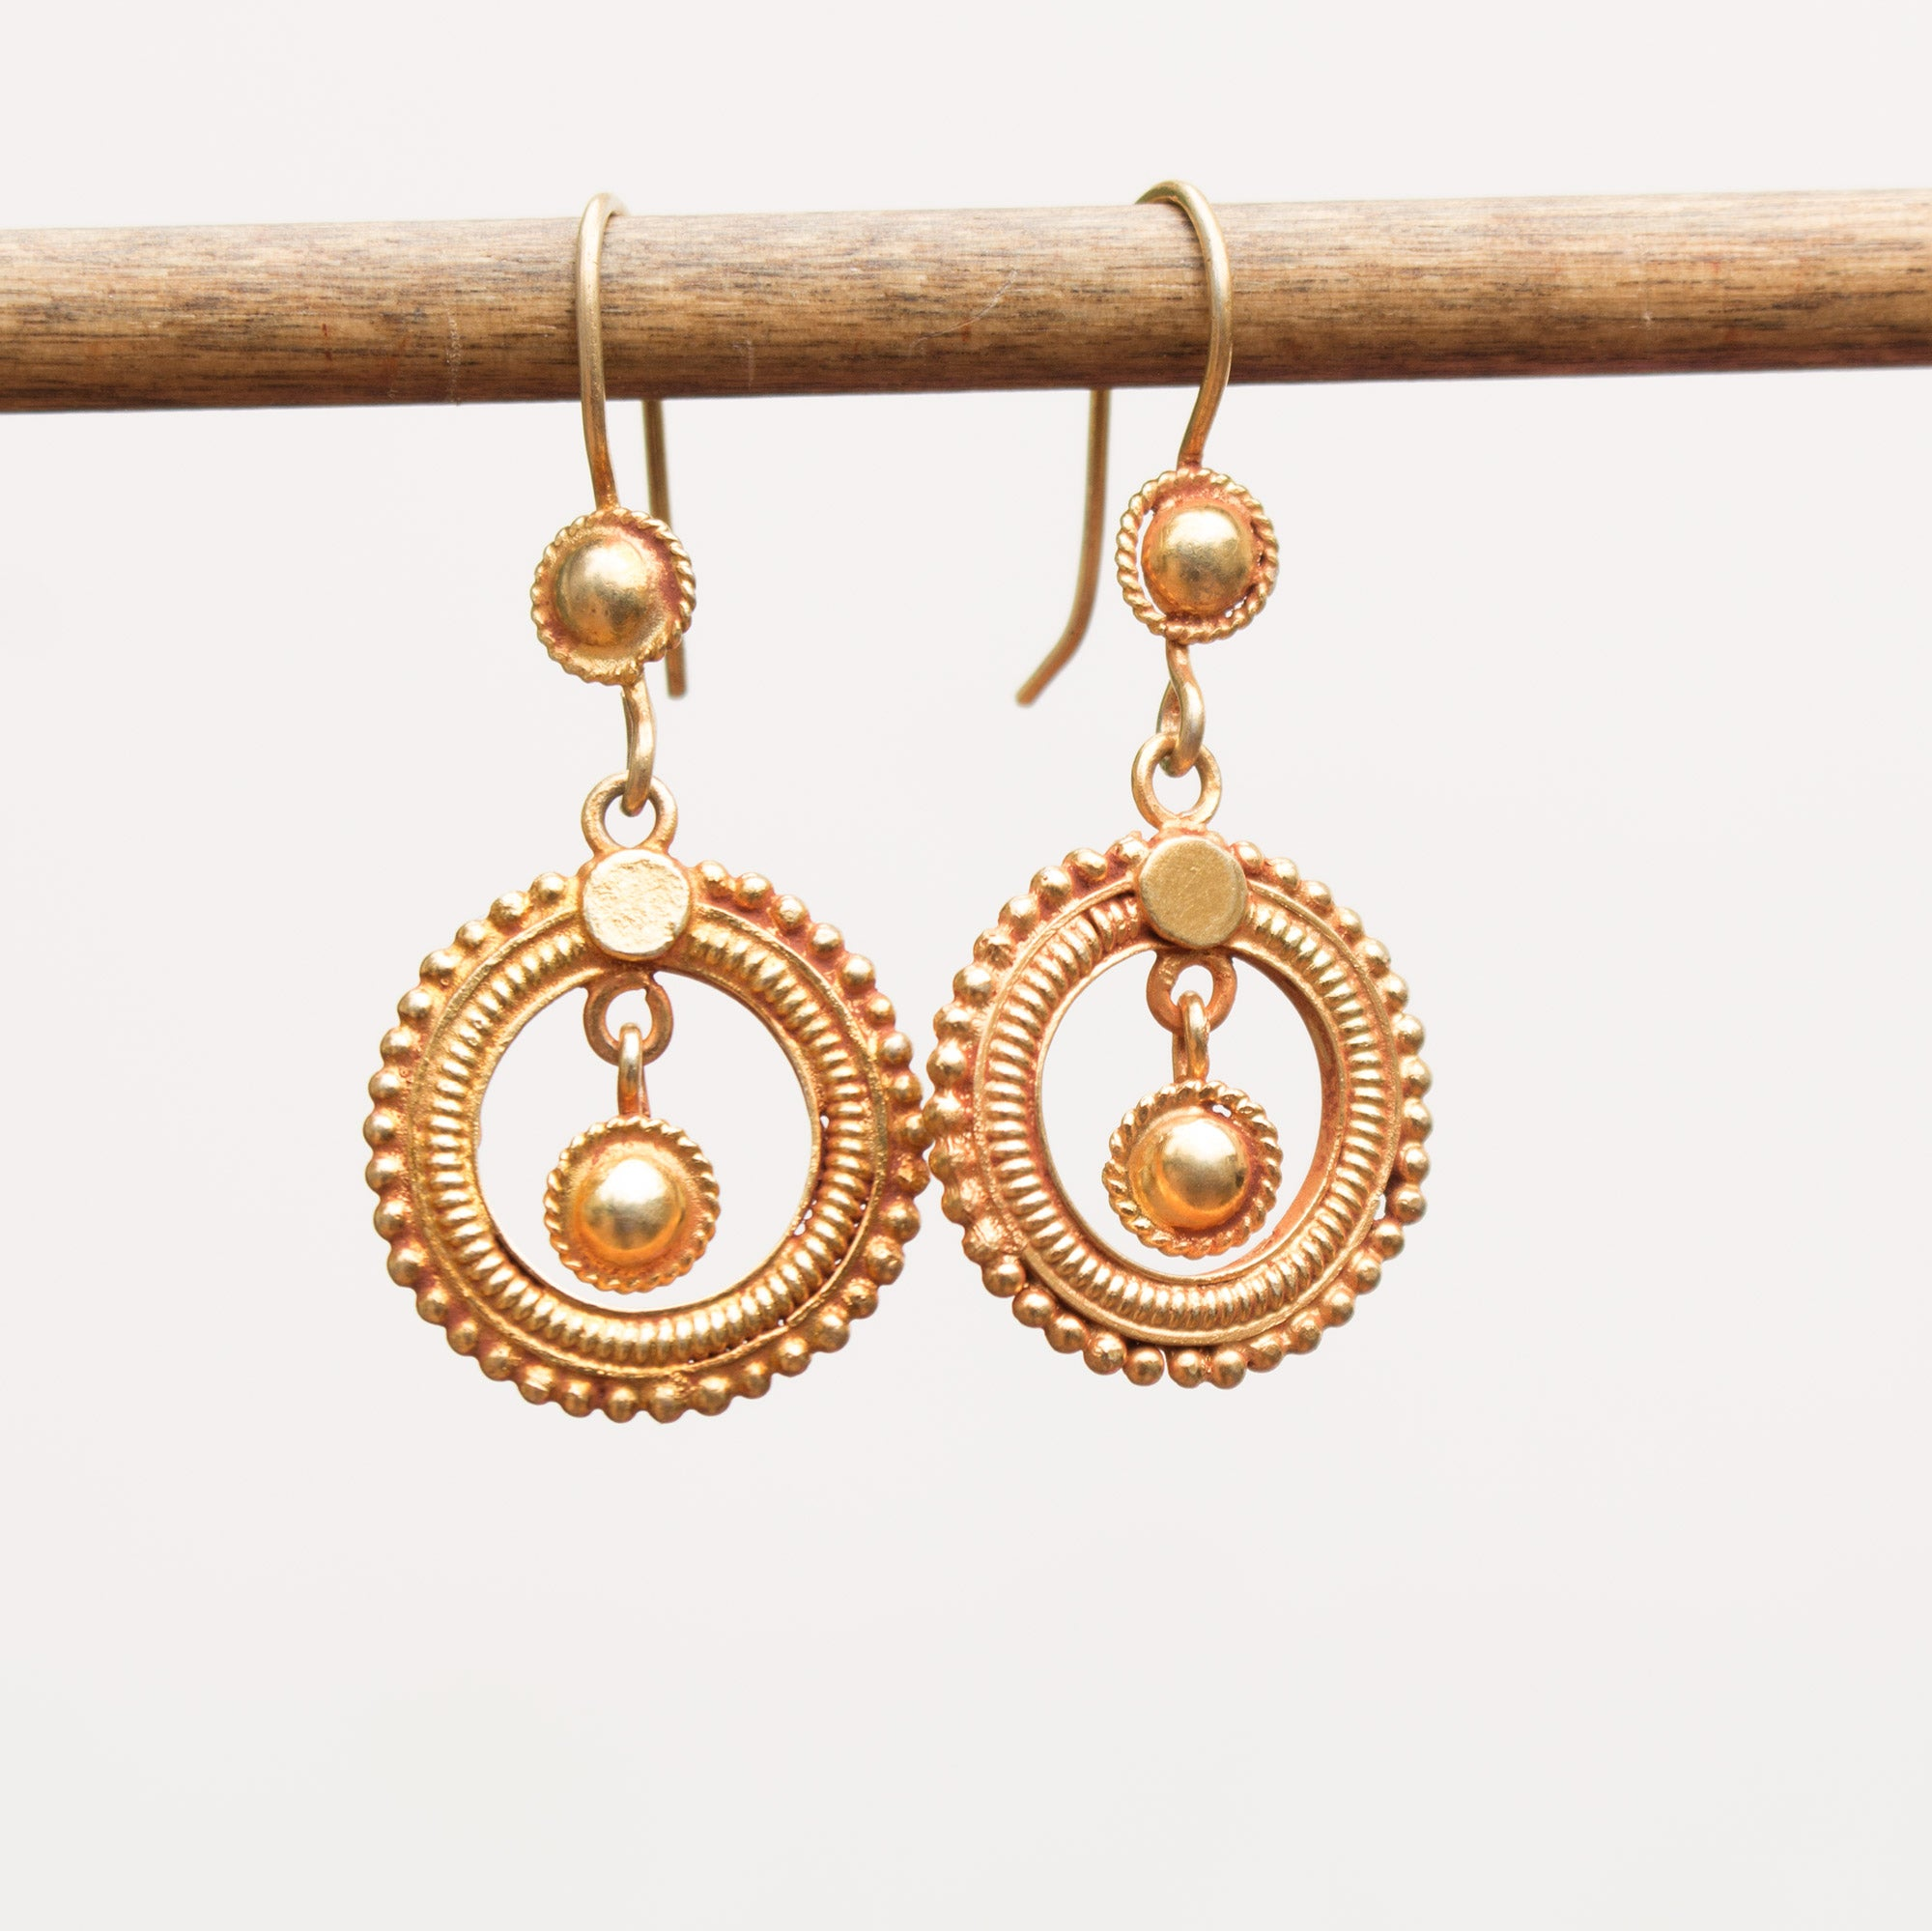 Round vermeil earrings